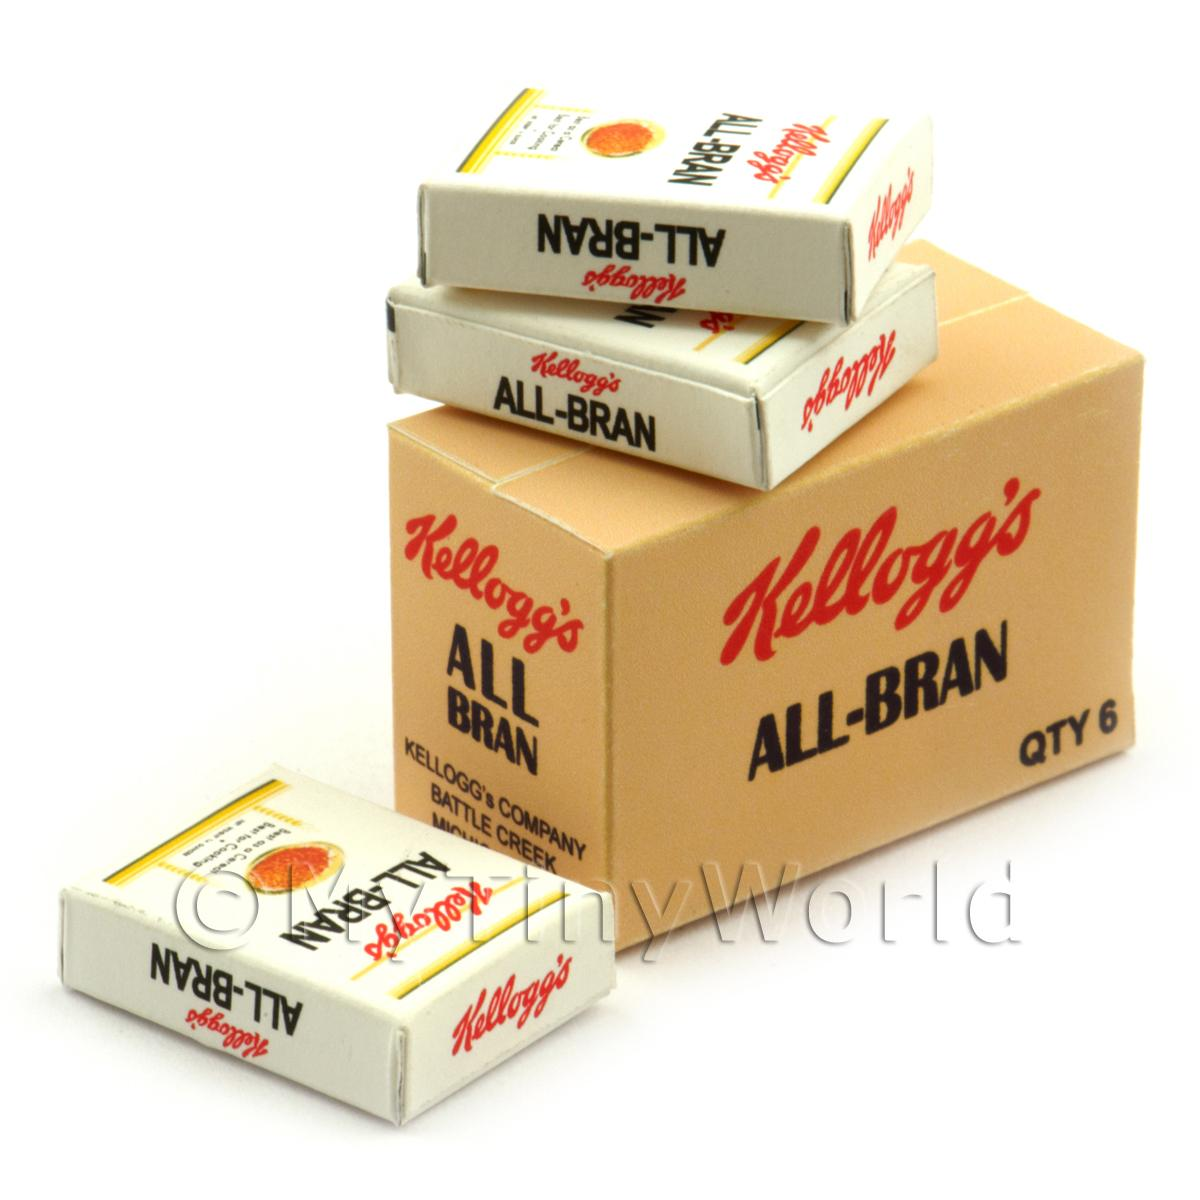 Dolls House Miniature Kellogs All Bran Shop Stock Box And 3 Loose Boxes